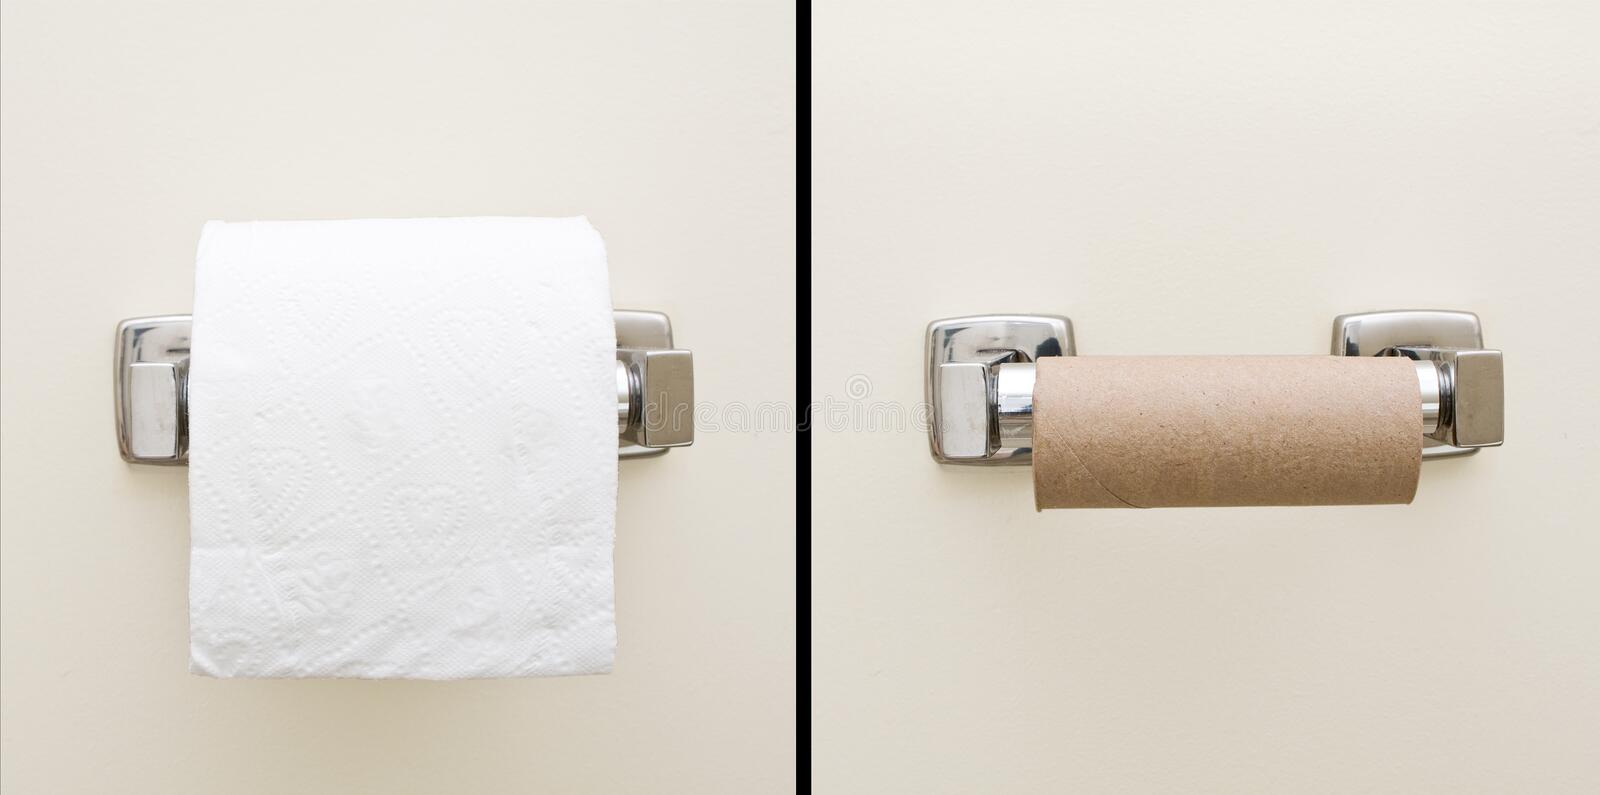 Good day - bad day. Good day, bad day concept of full and empty bathroom tissue roll royalty free stock image